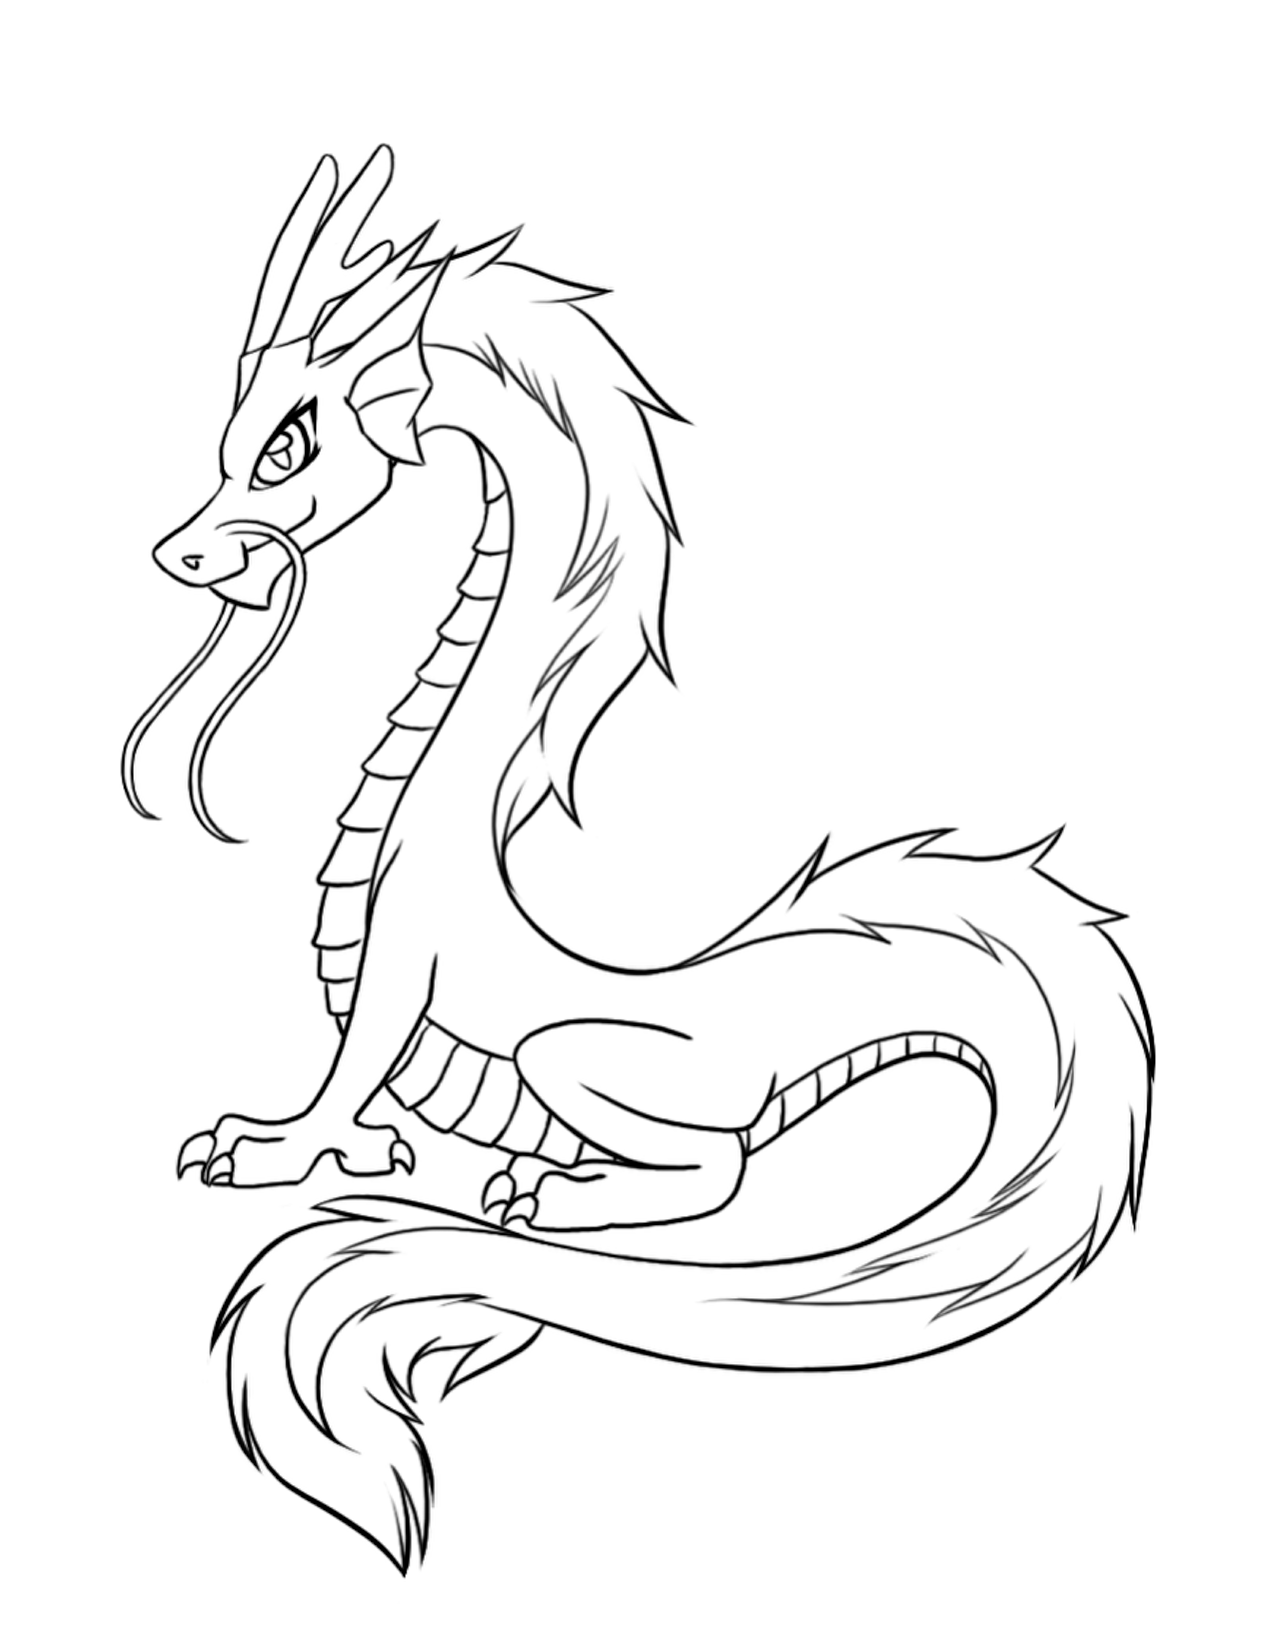 dragon coloring page cartoon dragon coloring pages download and print for free coloring dragon page